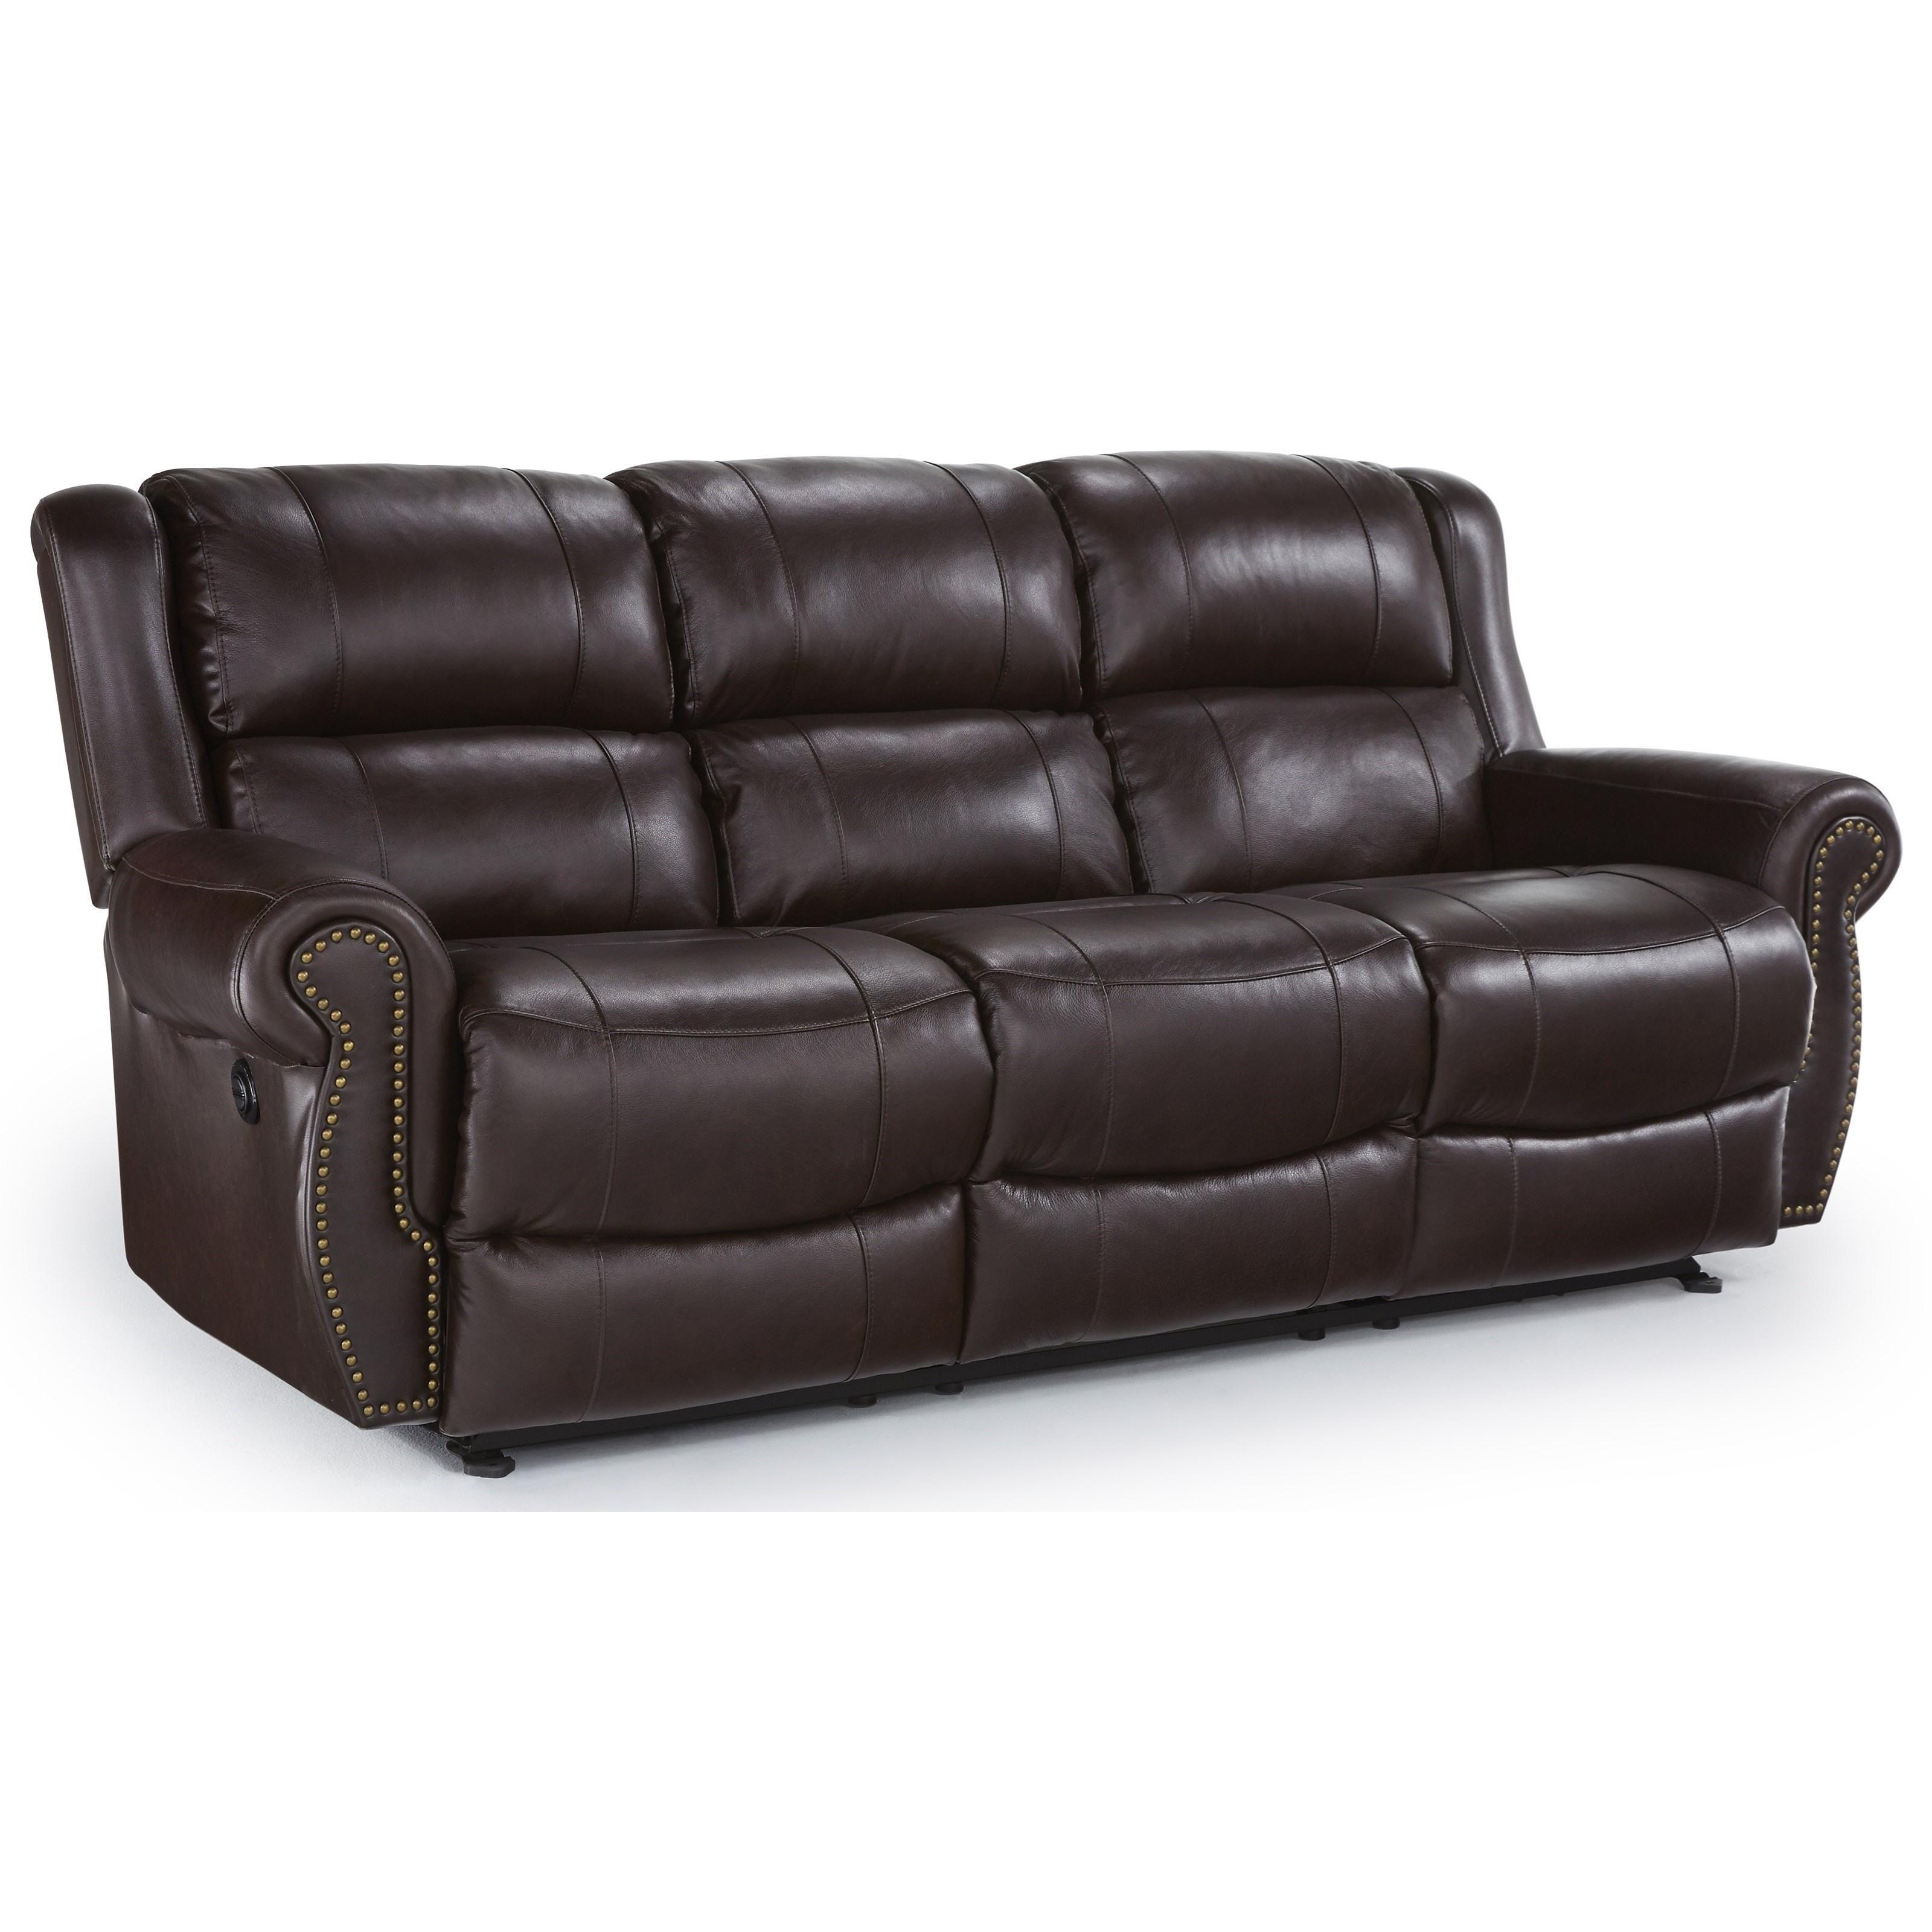 Best Home Furnishings Terrill S870ca4 Transitional Space Saver Reclining Sofa Great American